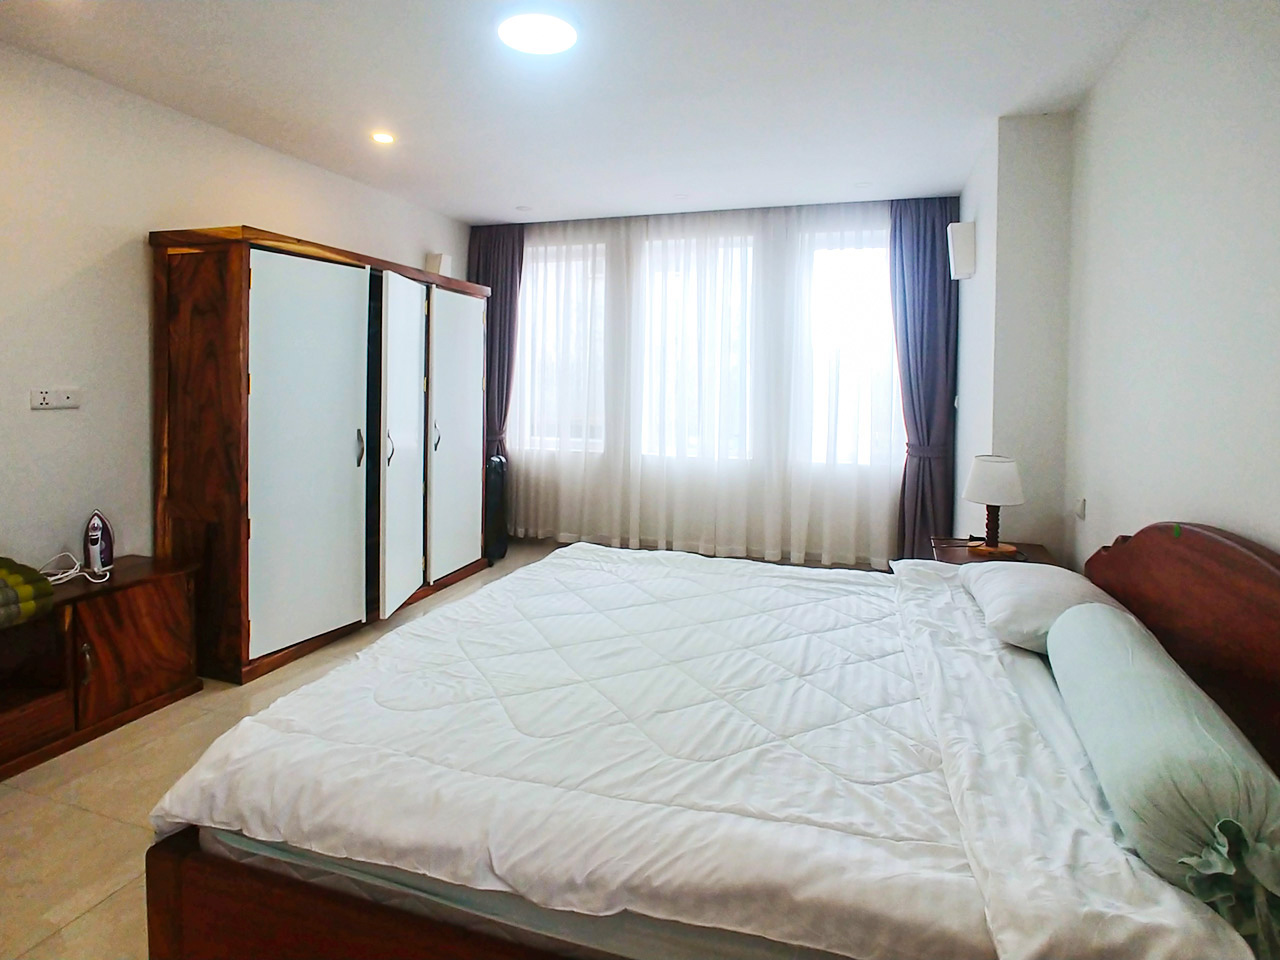 2 beds apartment for rent @ near Russian market